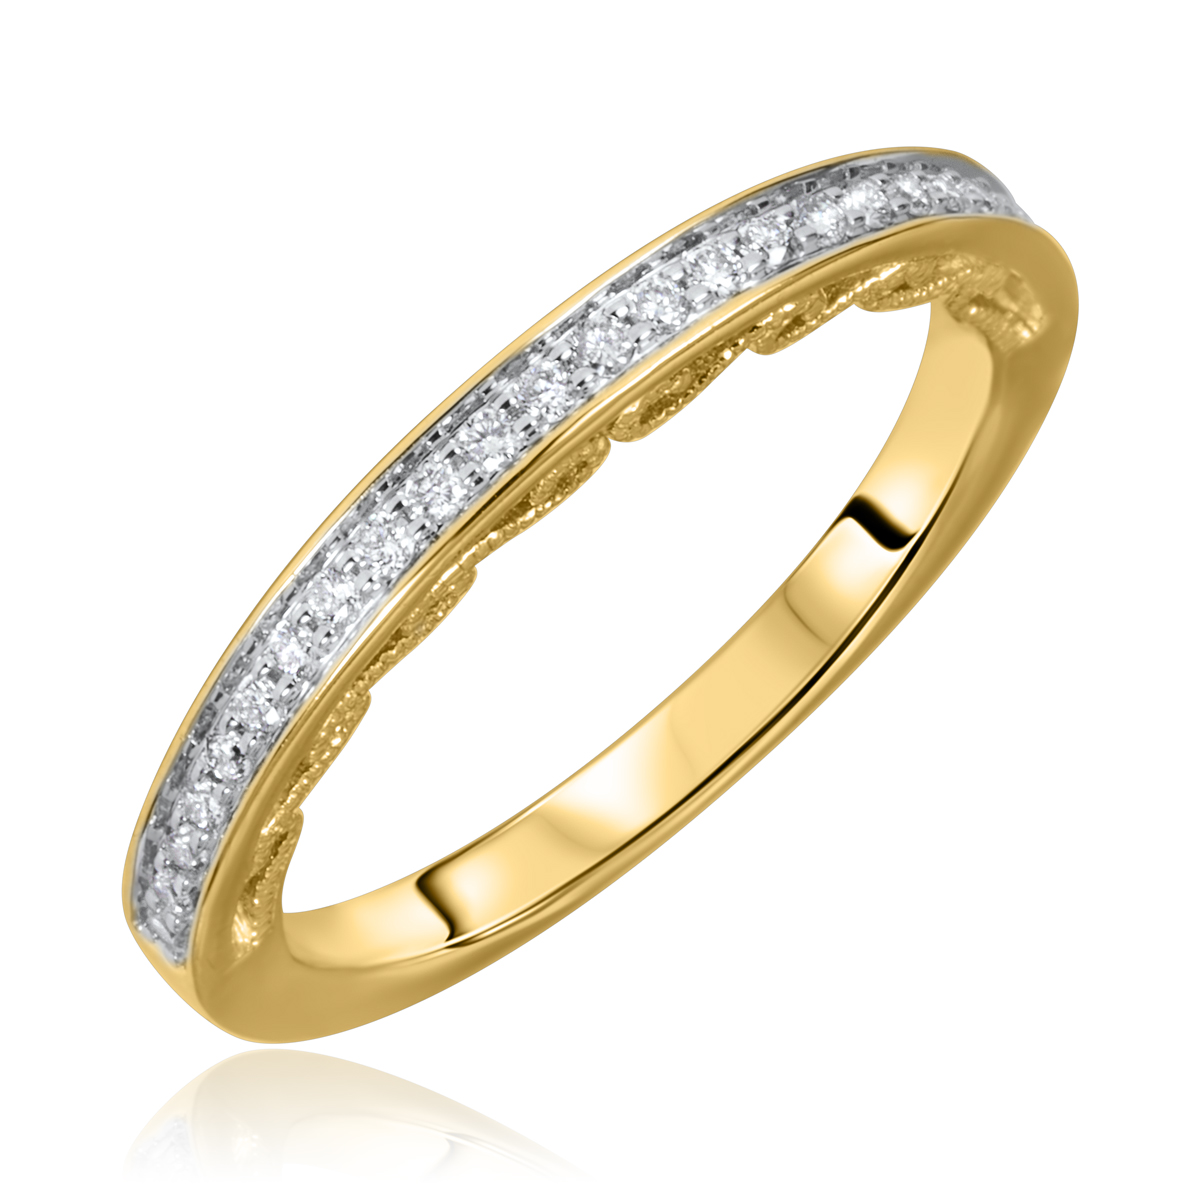 1/6 Carat T.W. Round Cut Diamond Ladies Wedding Band 10K Yellow Gold- Size 8